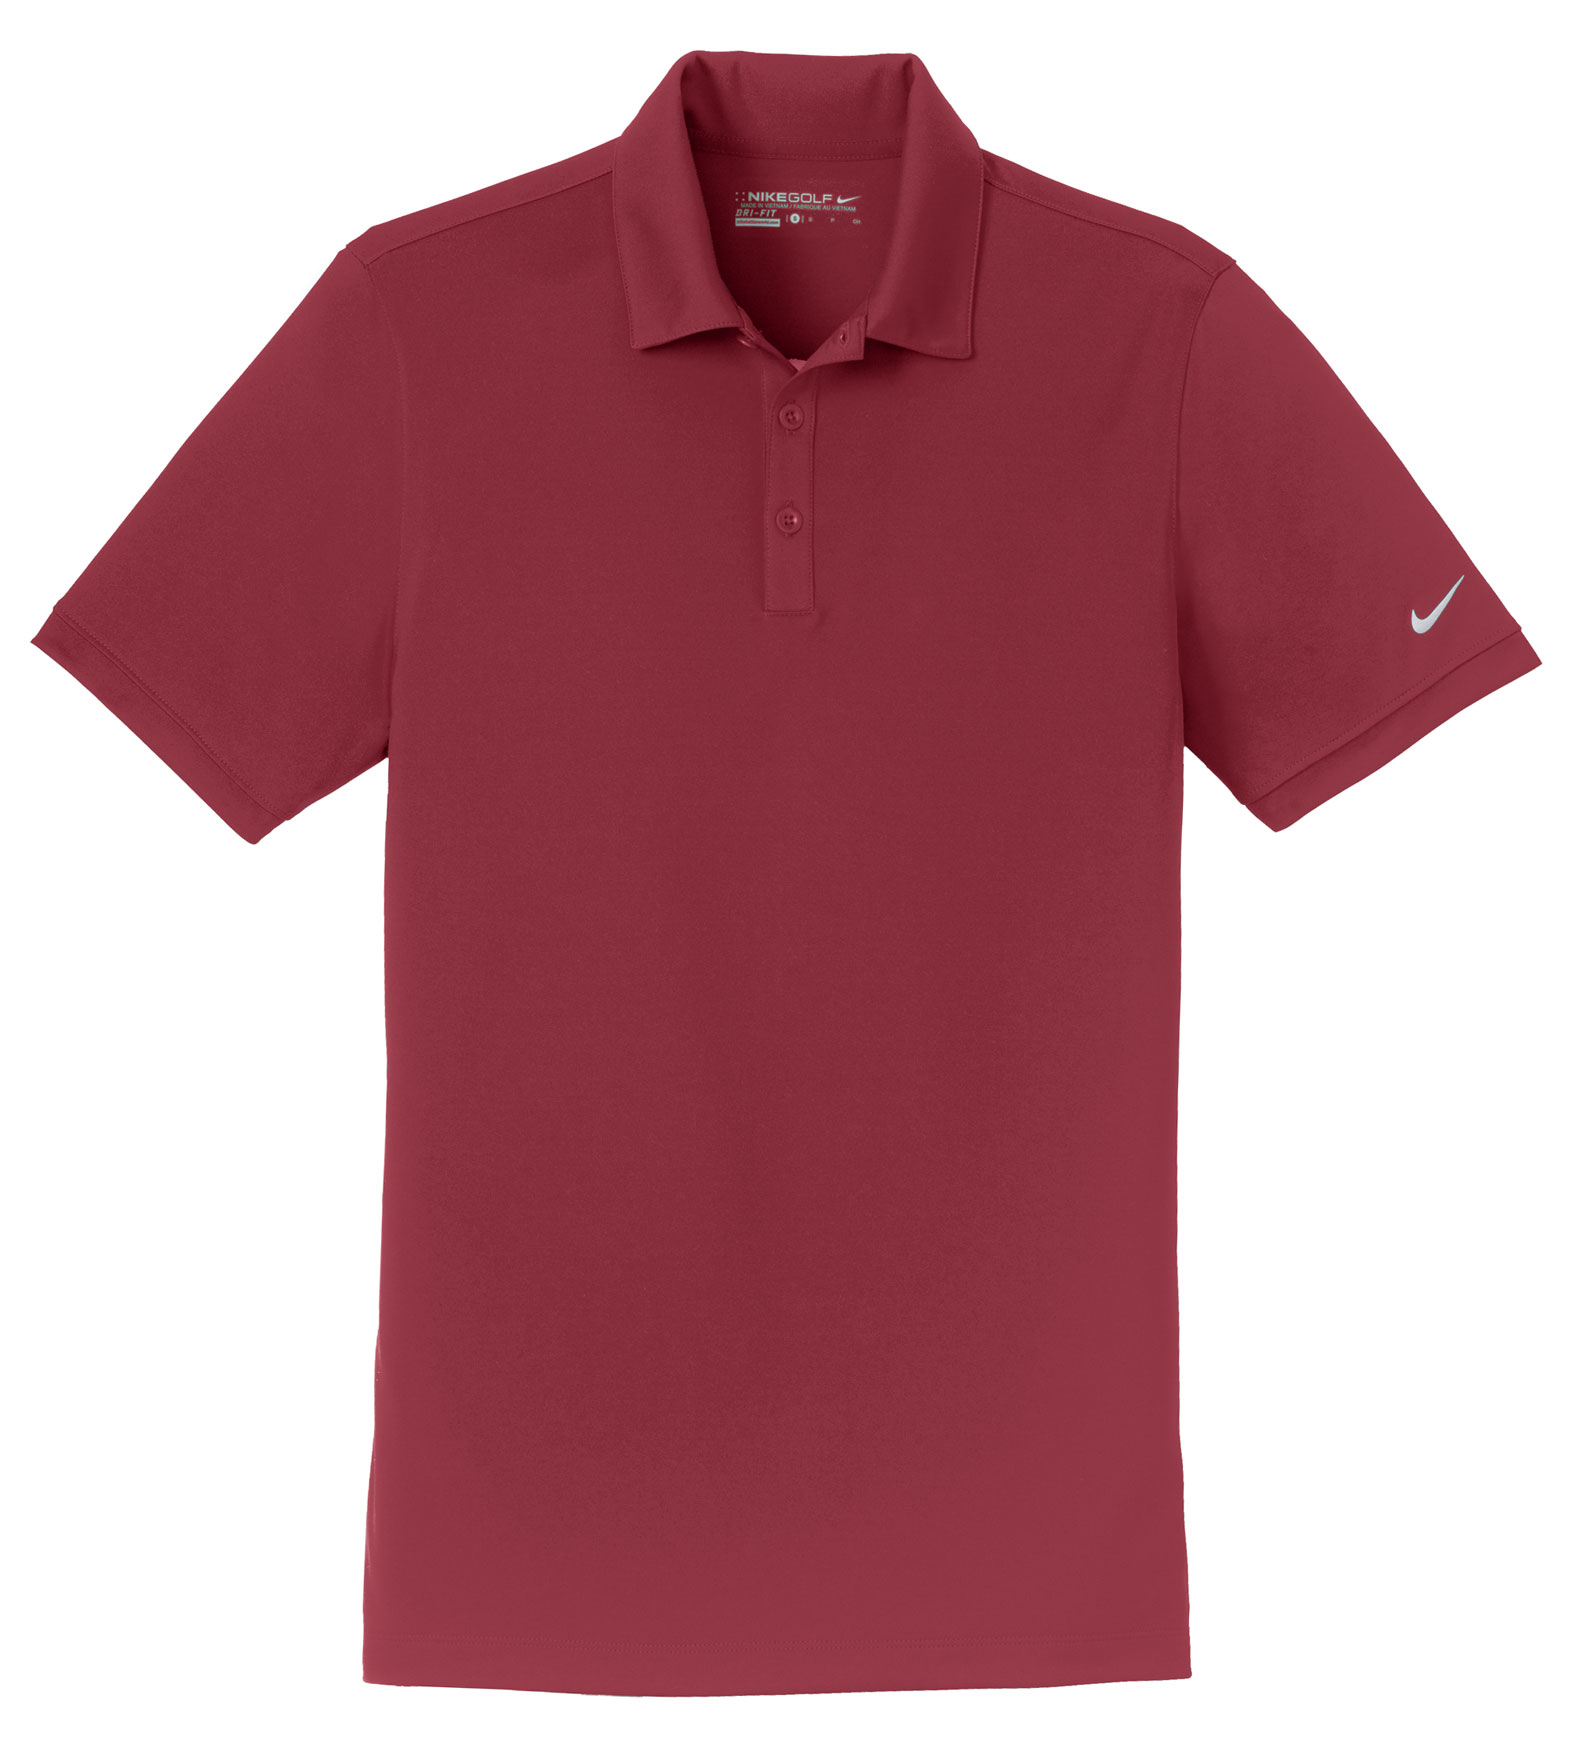 Nike Golf Mens Dri-FIT Players Modern Fit Polo